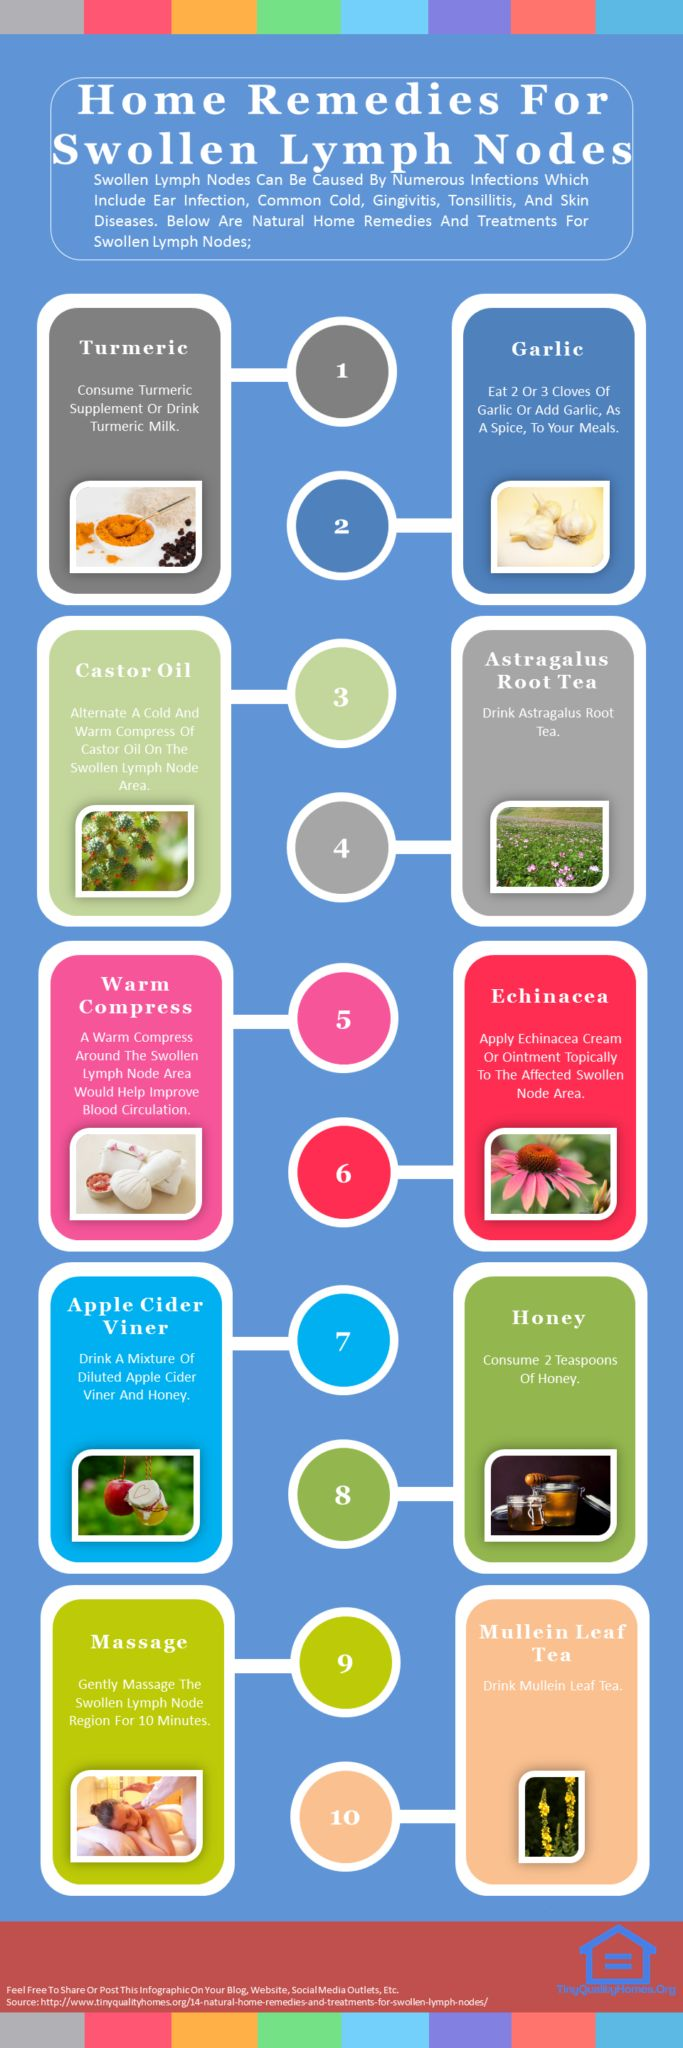 14 Natural Home Remedies And Treatments For Swollen Lymph Nodes: This Guide Shows The Following; Natural Remedies For Swollen Lymph Nodes In Neck, Essential Oils For Swollen Lymph Nodes In Groin, Apple Cider Vinegar For Swollen Lymph Nodes, How To Get Rid Of Swollen Lymph Nodes Under Jaw, How To Make Swollen Glands In Neck Go Down, Home Remedies For Swollen Lymph Nodes Behind Ear, How To Treat Swollen Lymph Nodes In Neck and Armpit, Home Remedies For Swollen Glands In Throat, Etc.